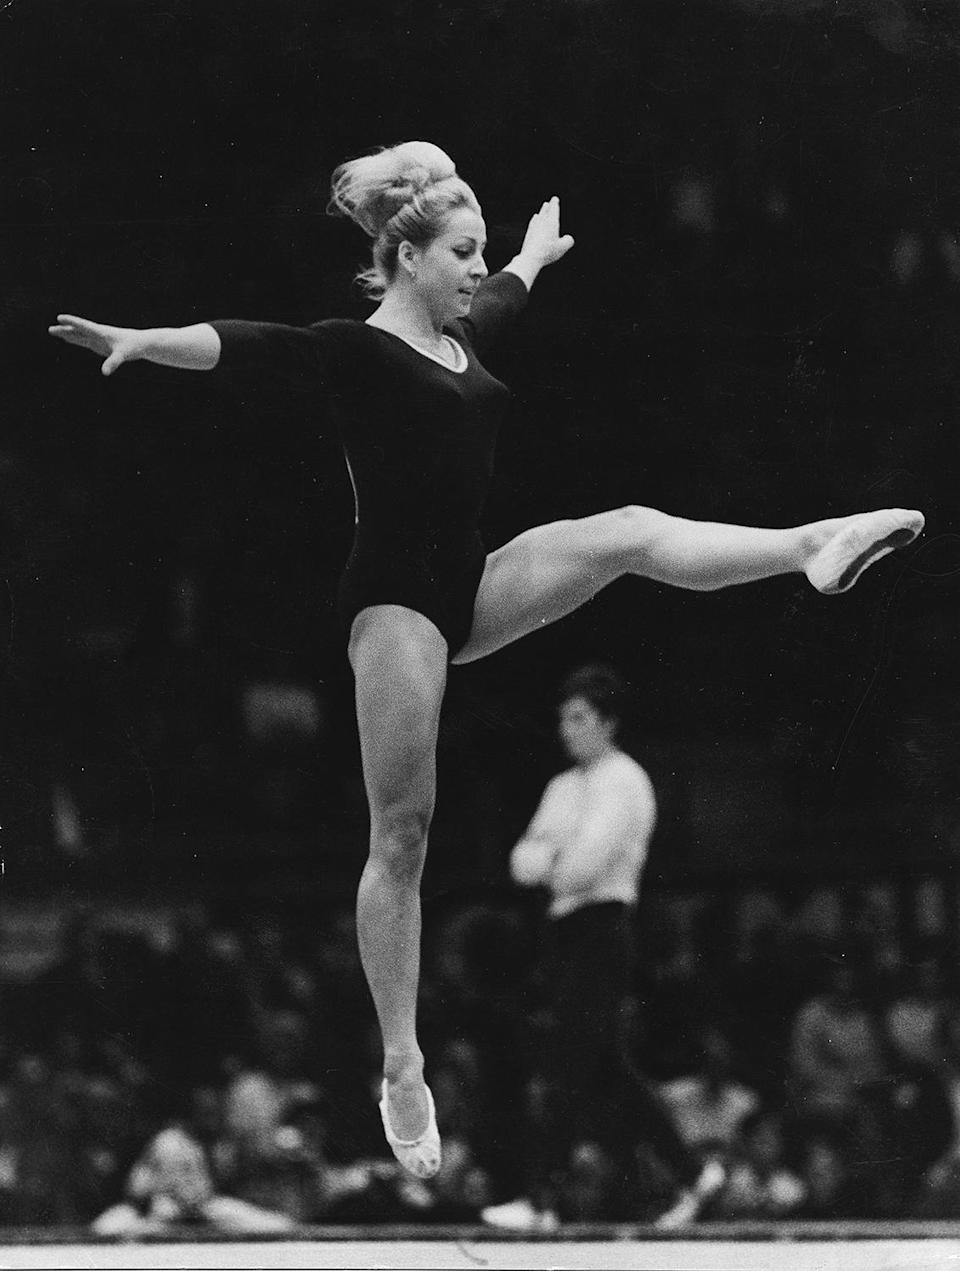 <p>V?ra ?áslavská competes at the 1968 Olympic Games in Mexico City. (Photo by von der Becke/ullstein bild via Getty Images) </p>